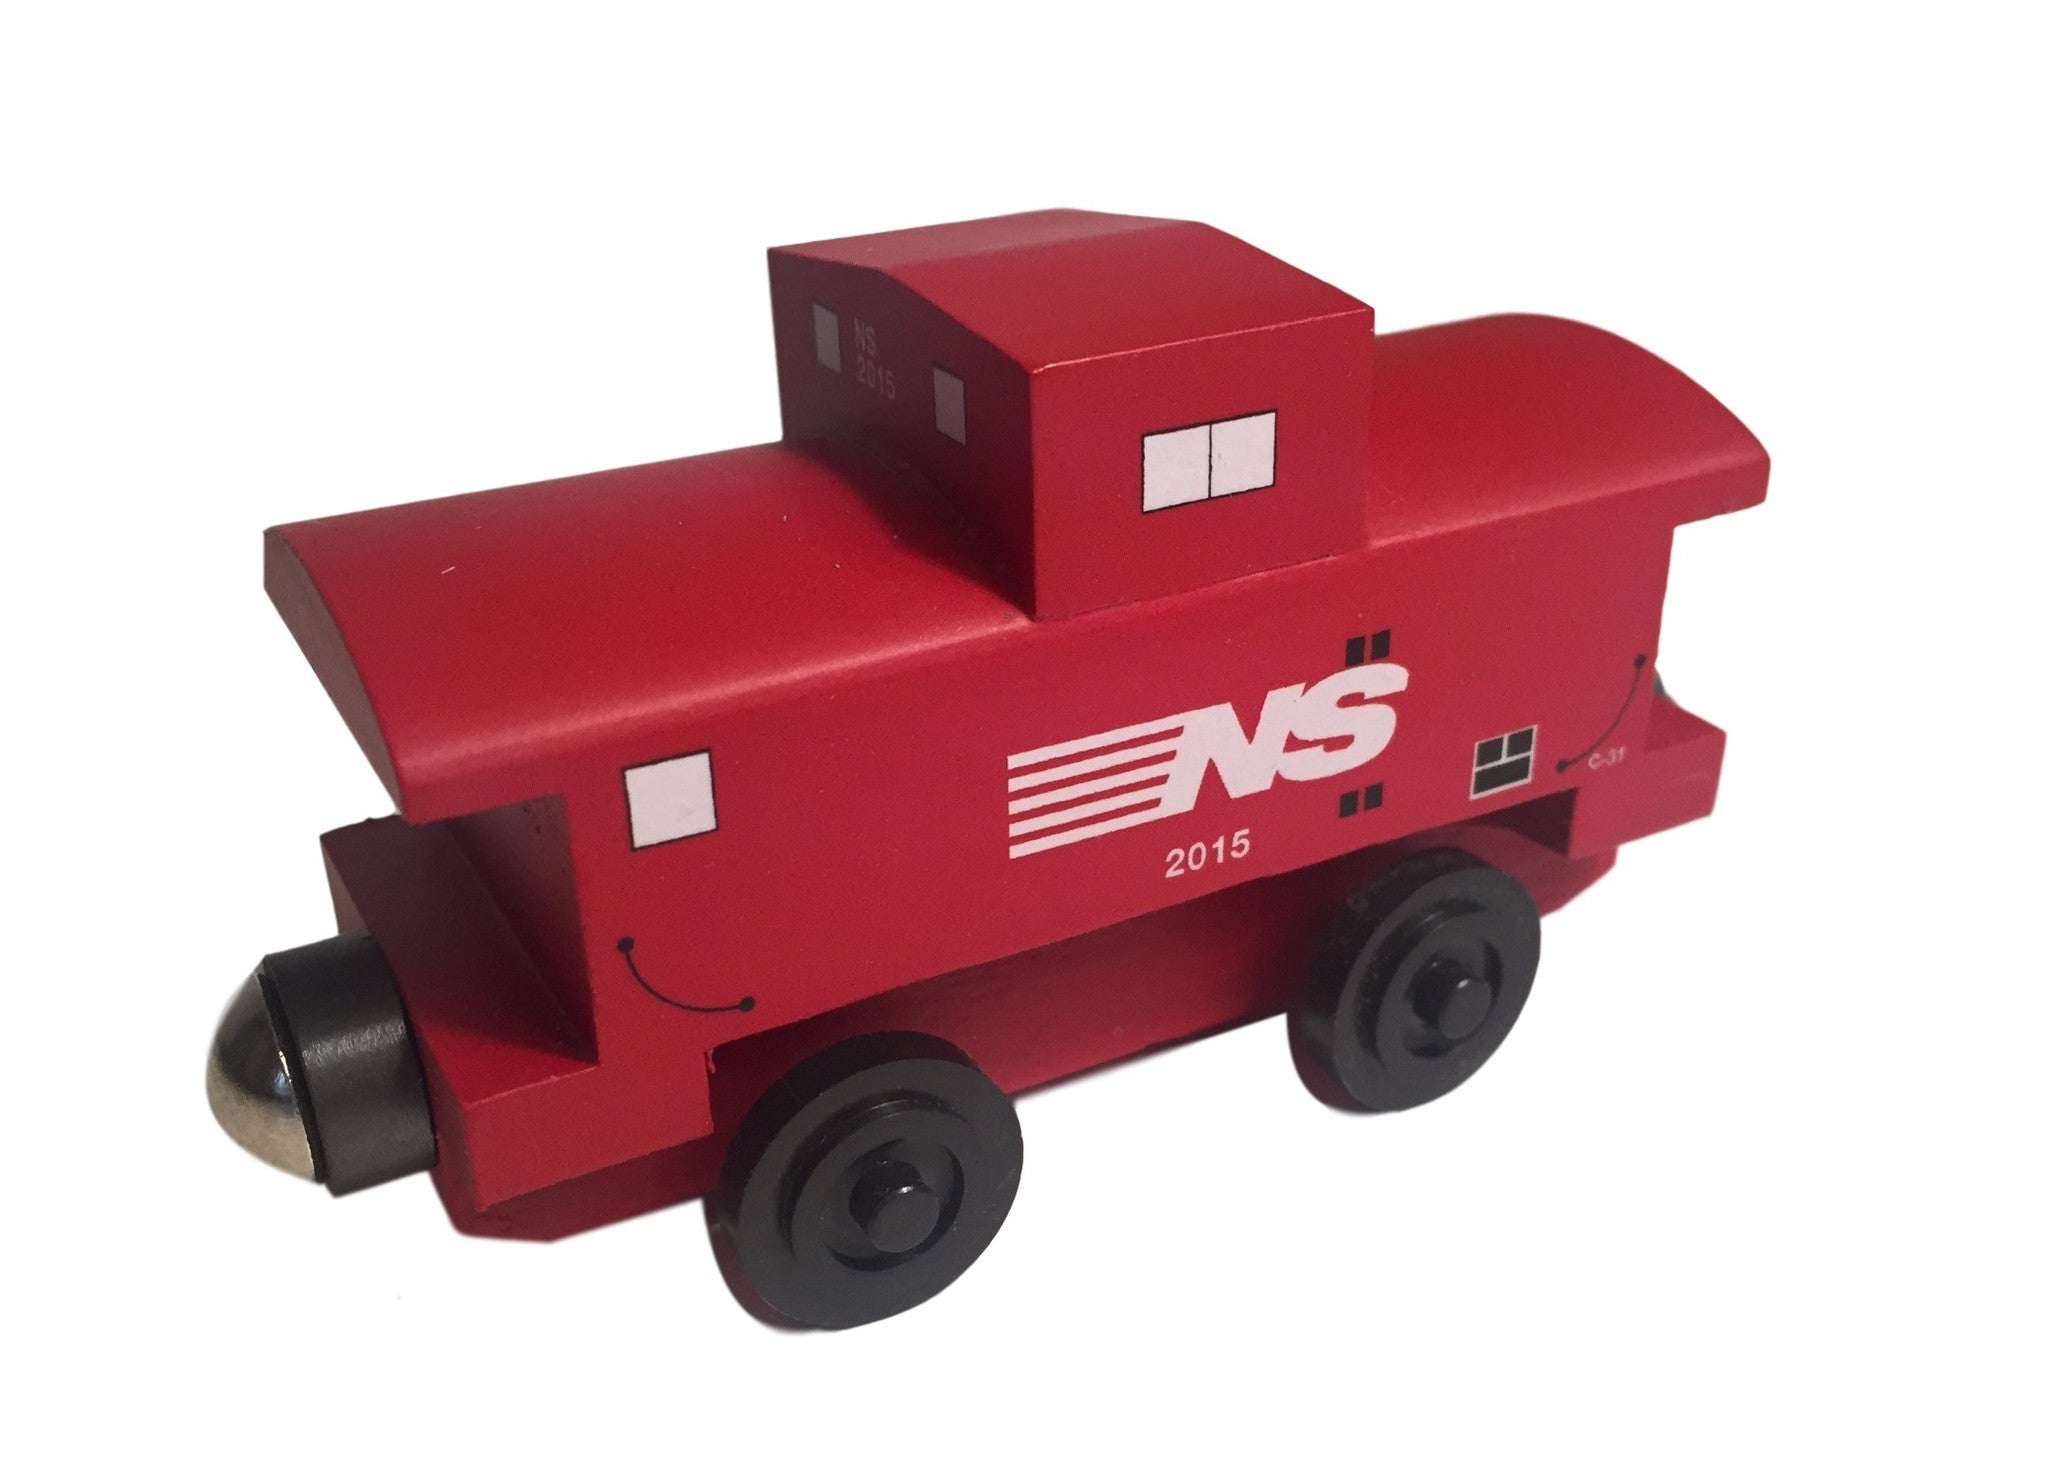 Whittle Shortline Railroad Norfolk Southern Caboose Wooden Toy Train